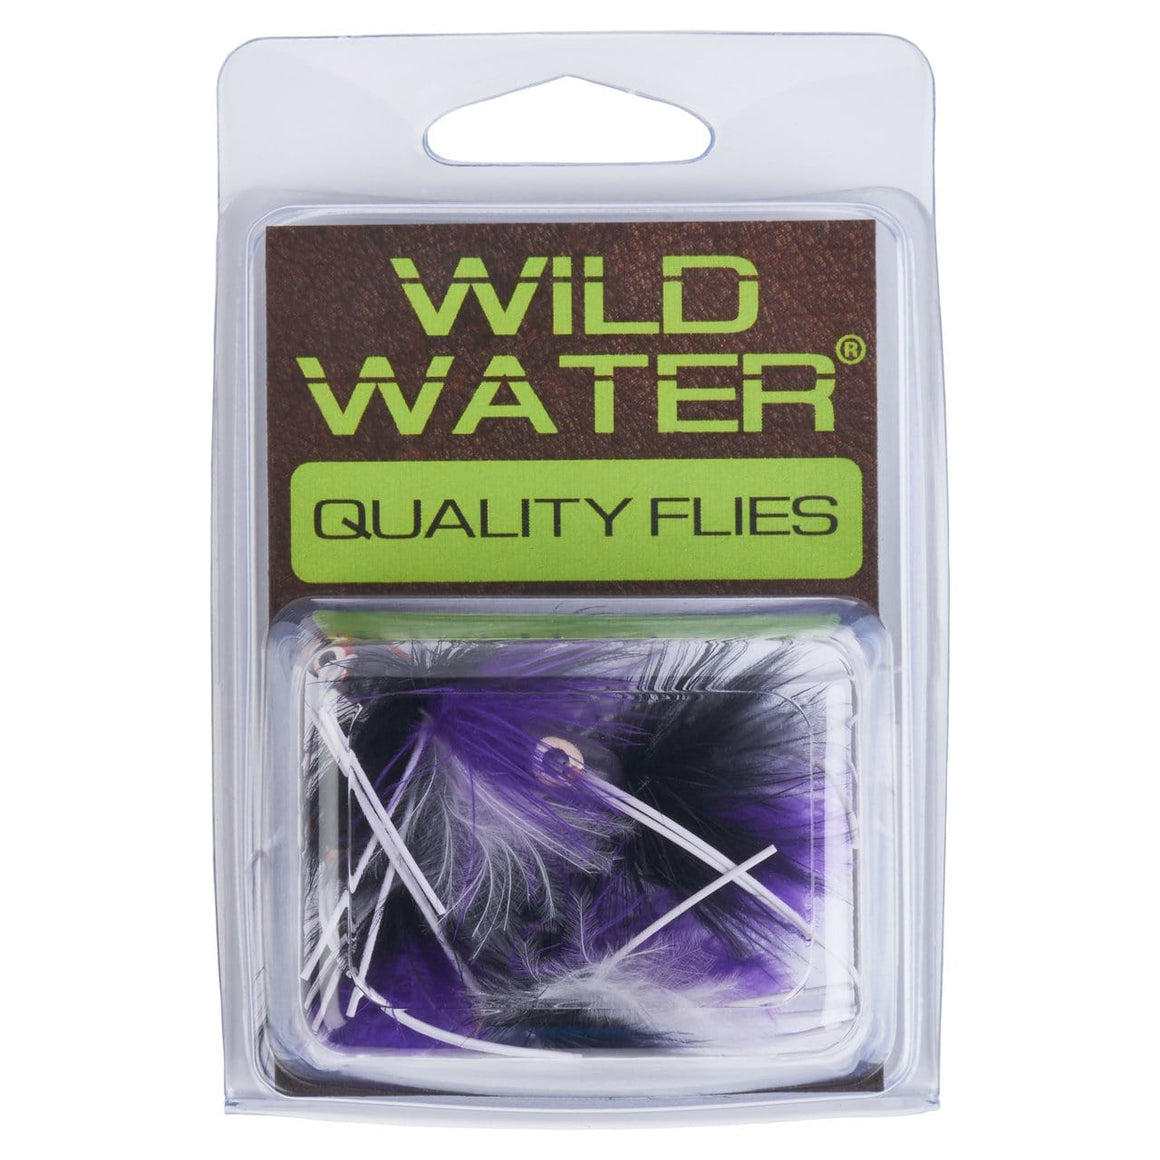 Wild Water Purple and Black Little Fatty by Pultz Poppers, Size 8, Qty. 4